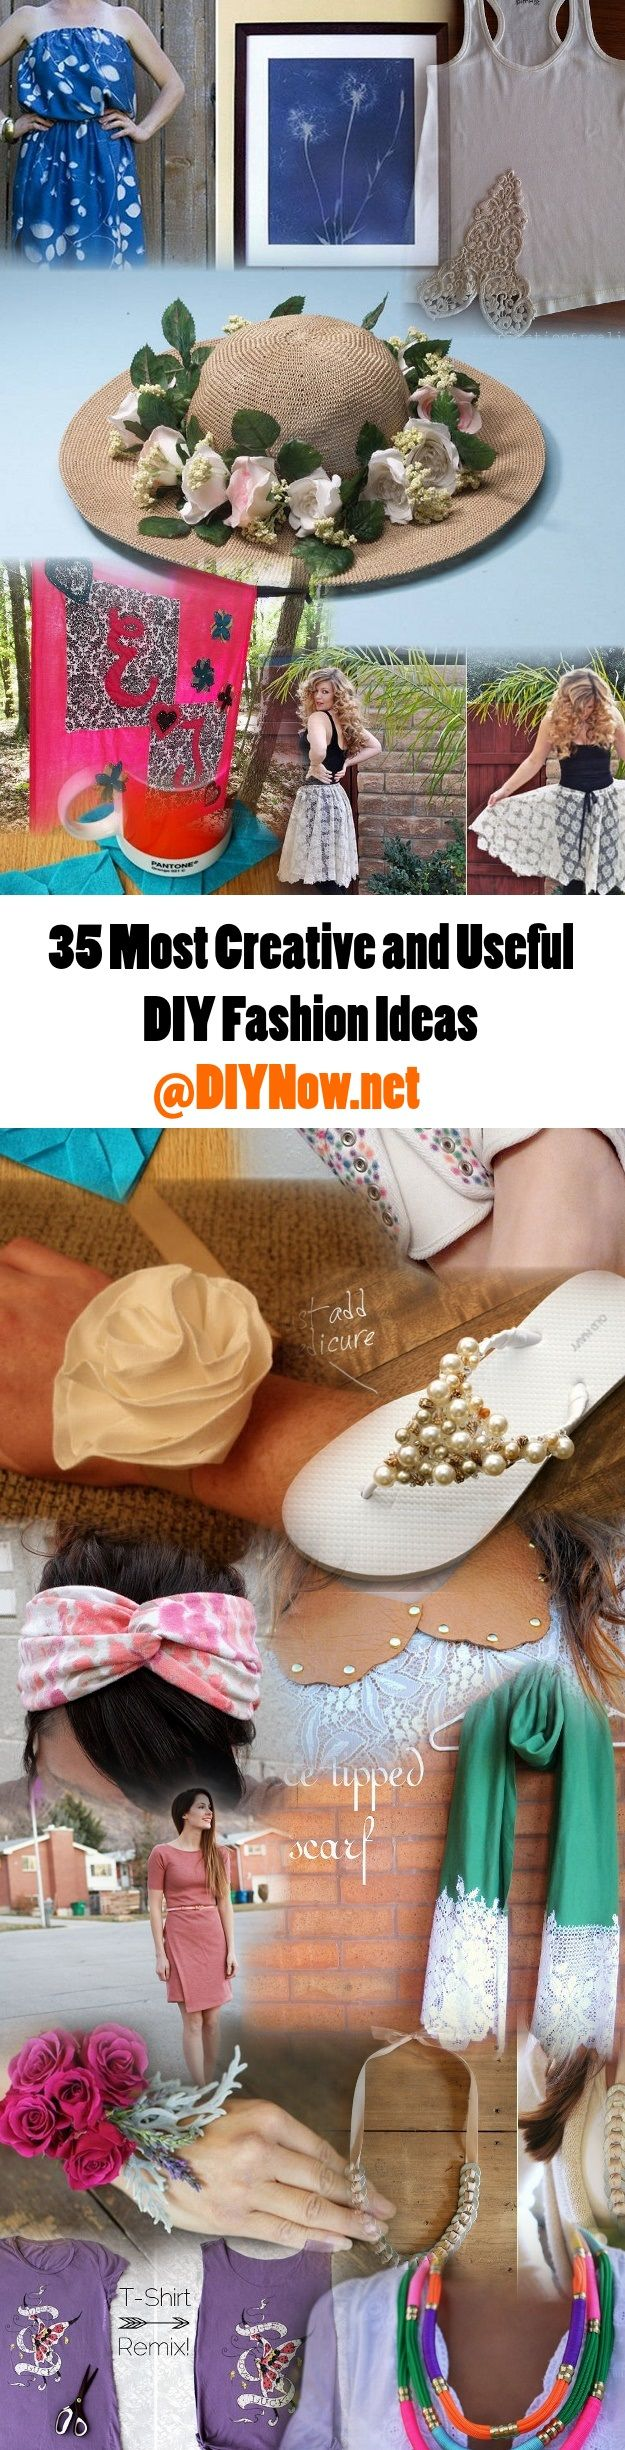 35 Most Creative and Useful DIY Fashion Ideas